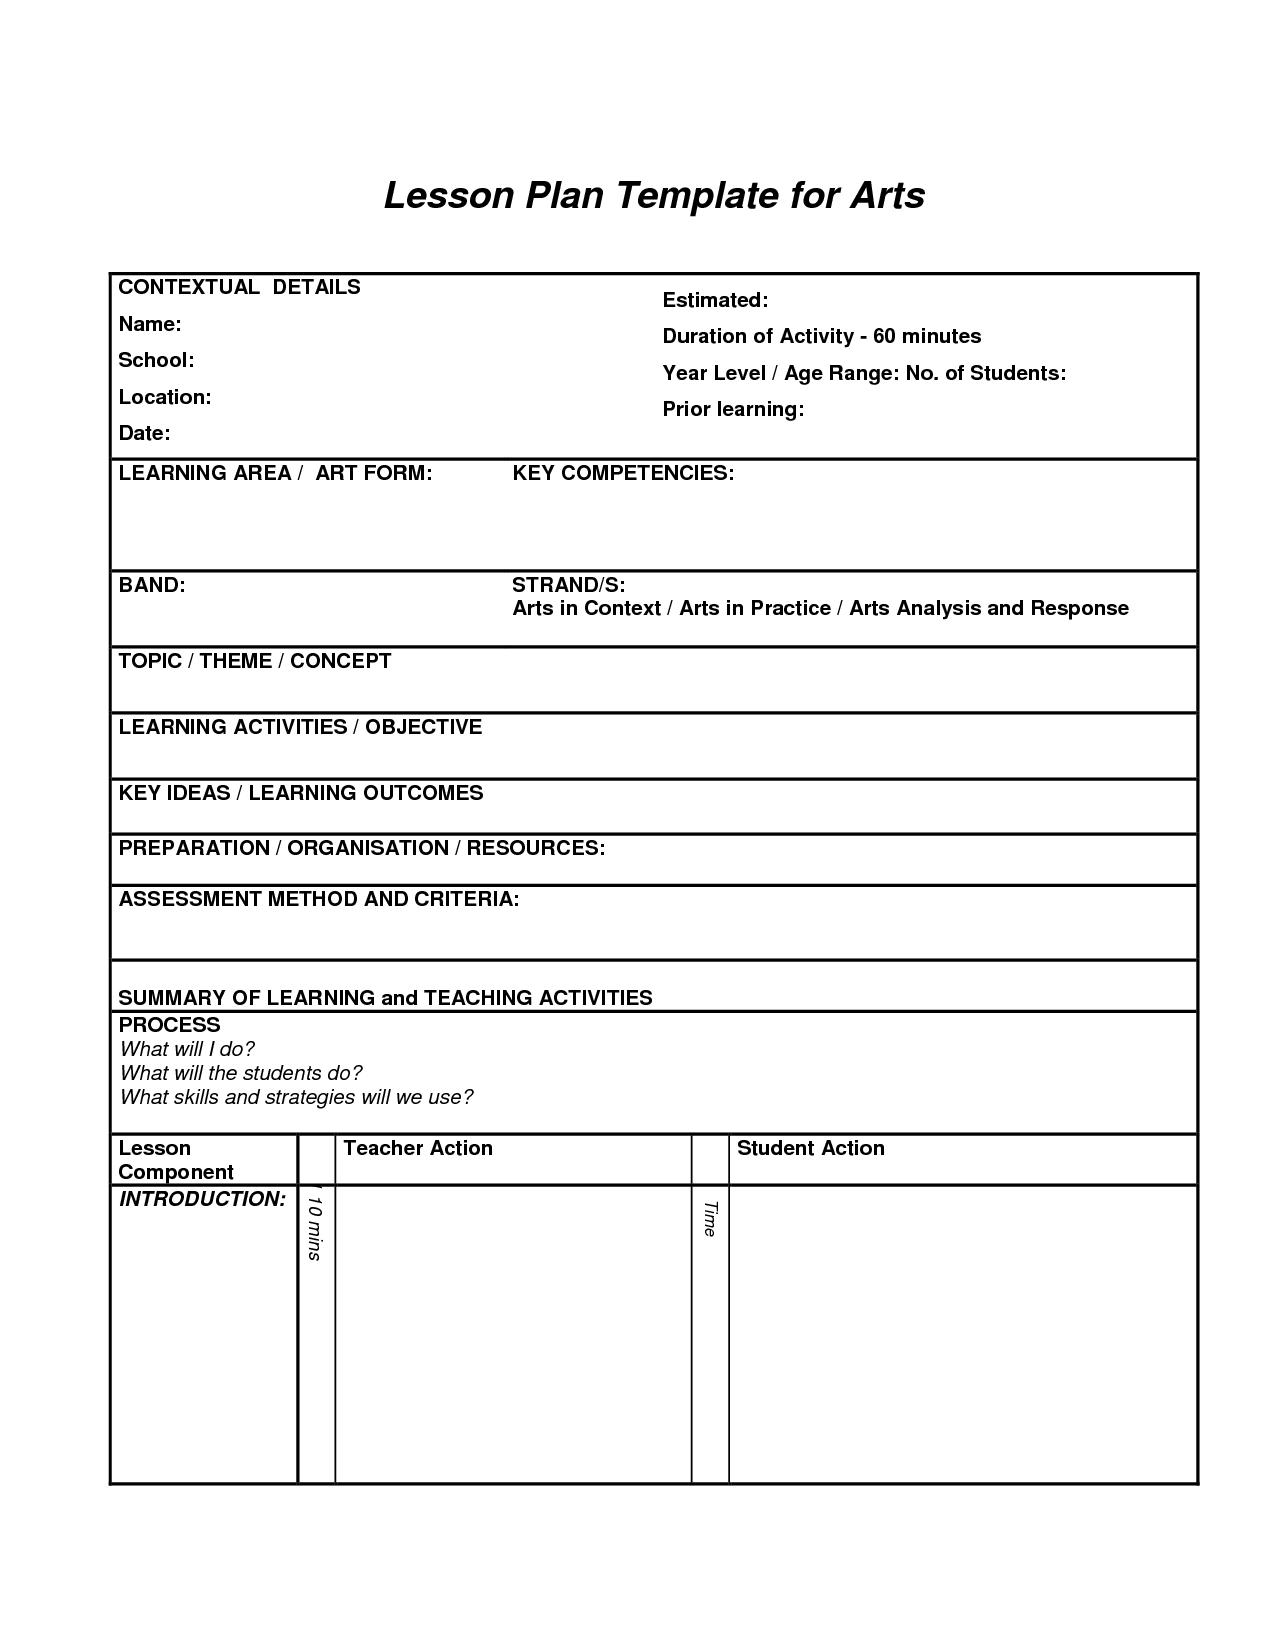 Lesson Plan Template For Arts With Images